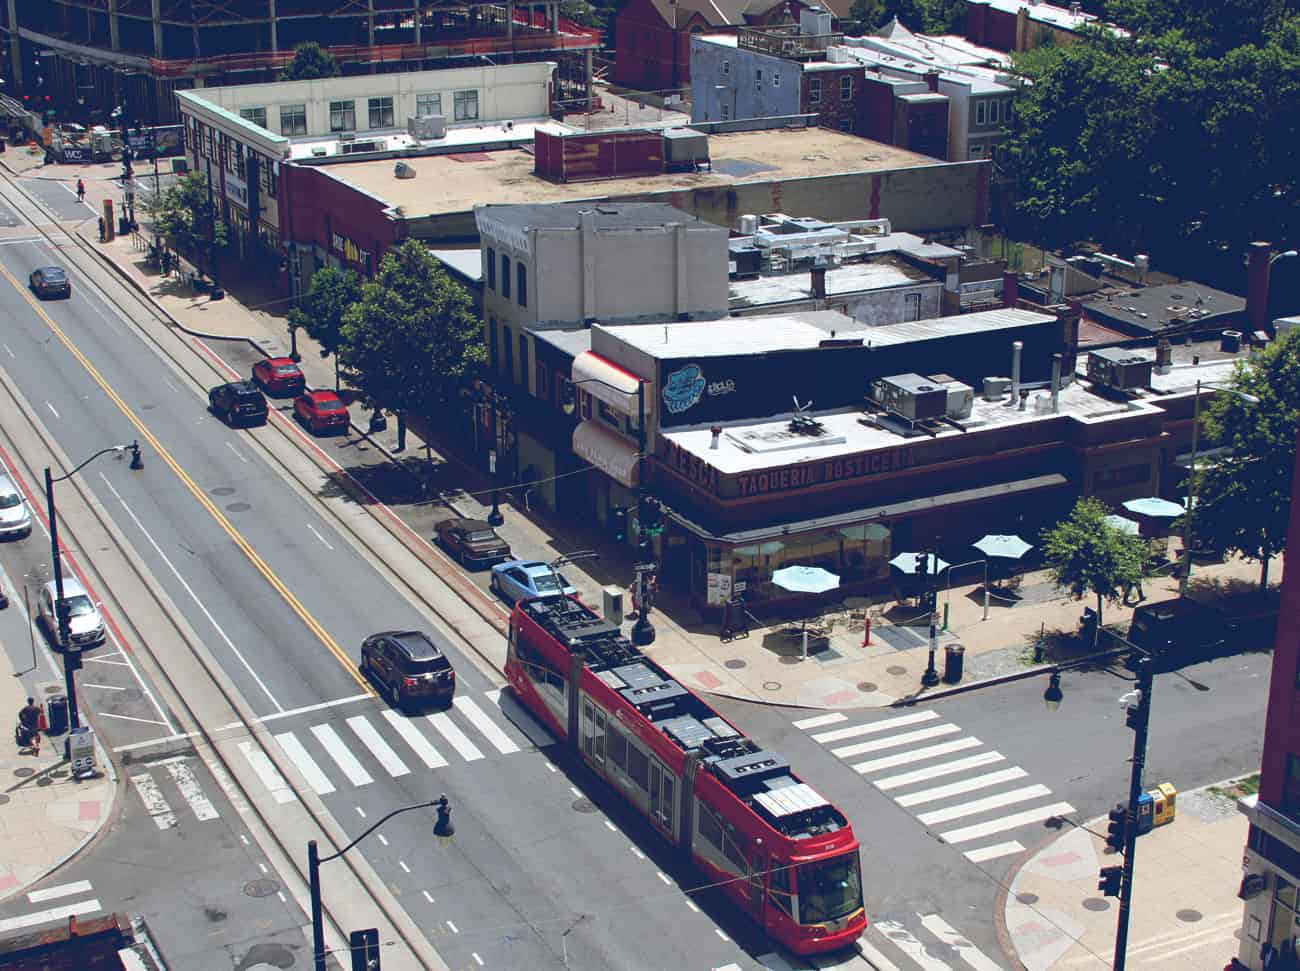 Ariel view of H Street